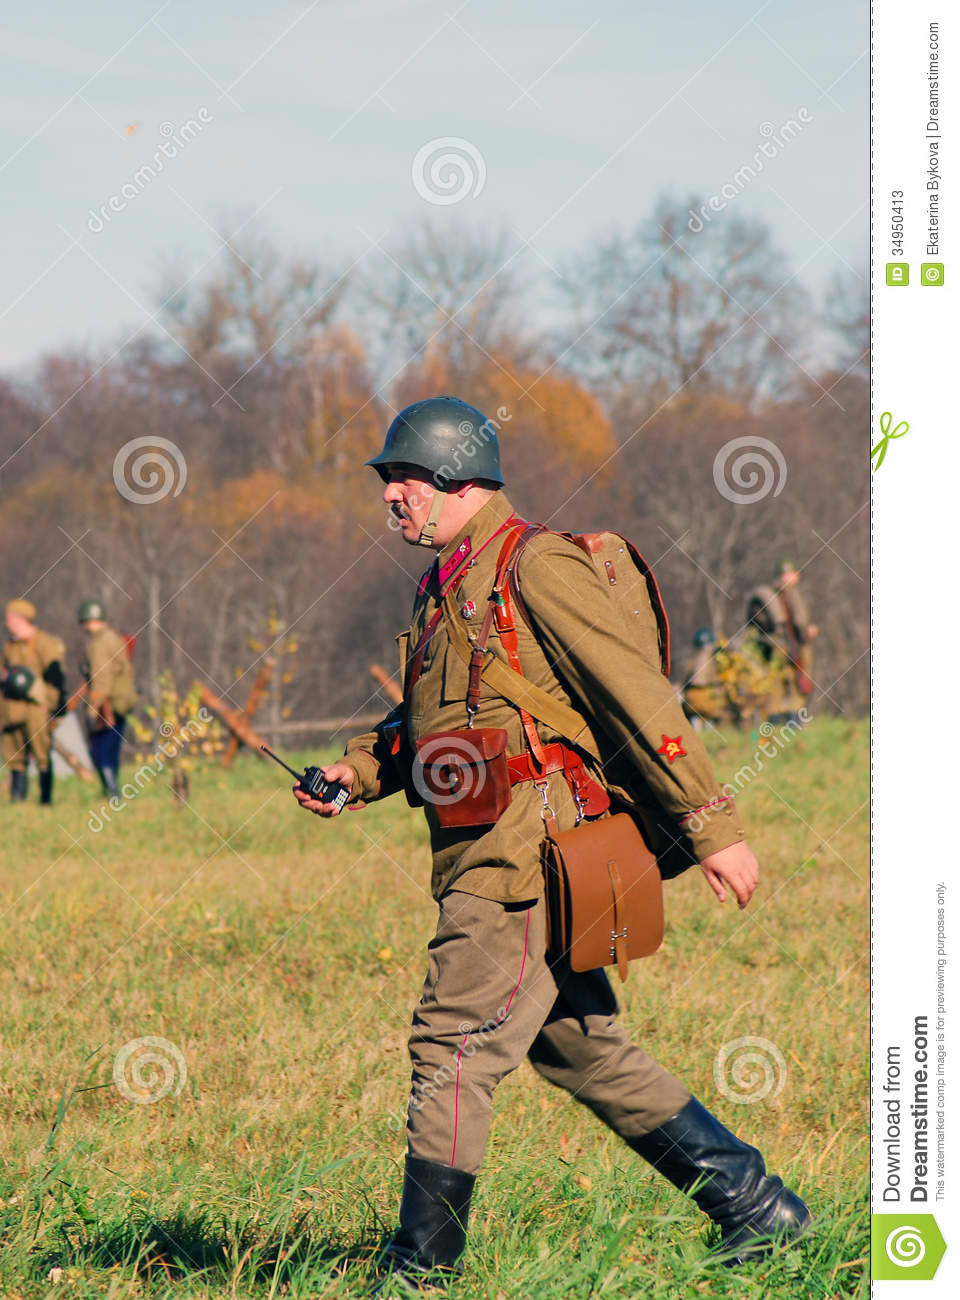 Russian Soldier Clipart.